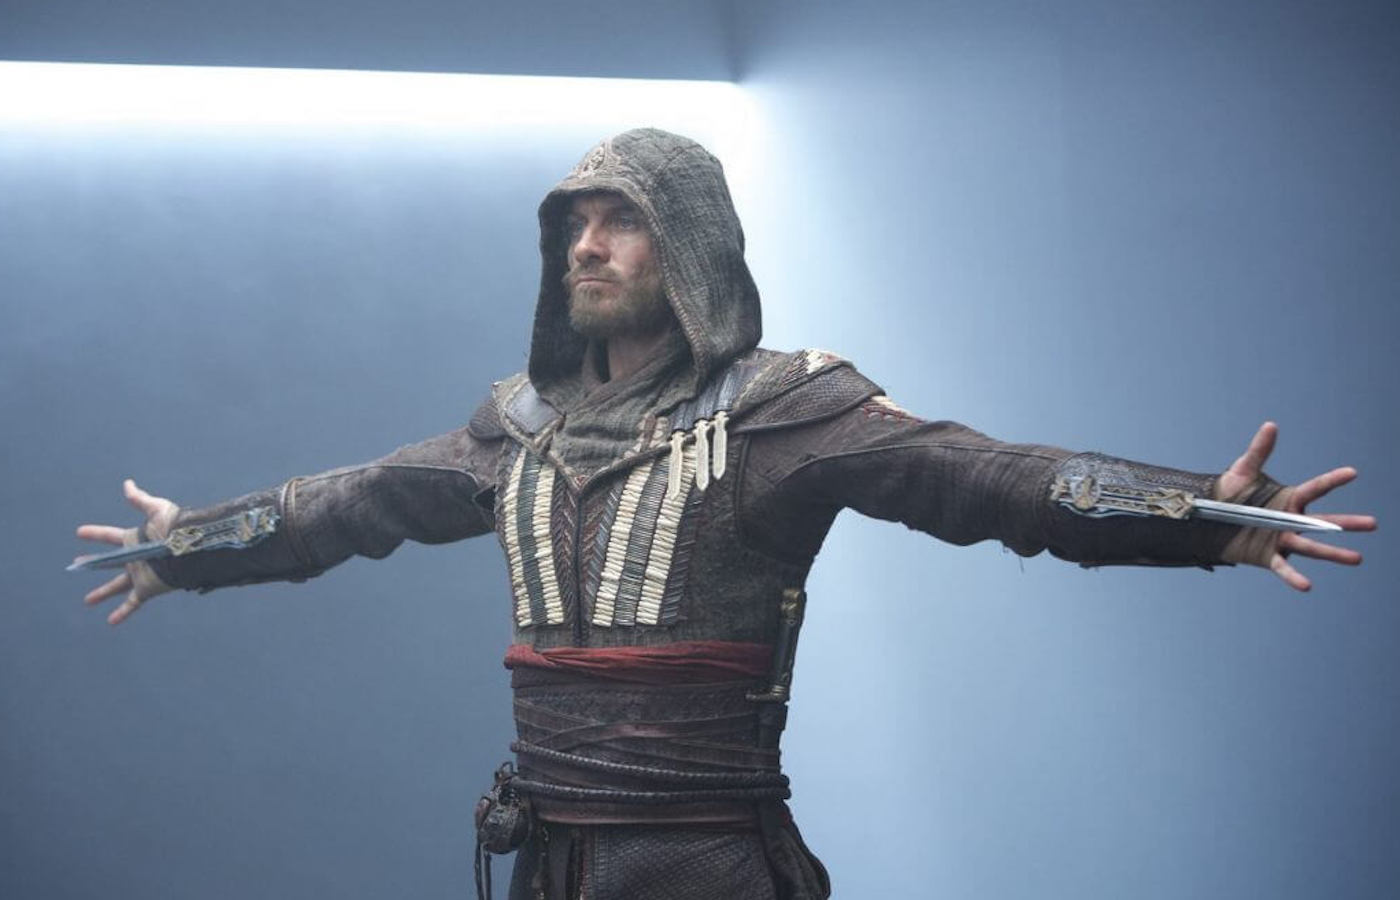 Assassins creed michael fassbender image 11 2